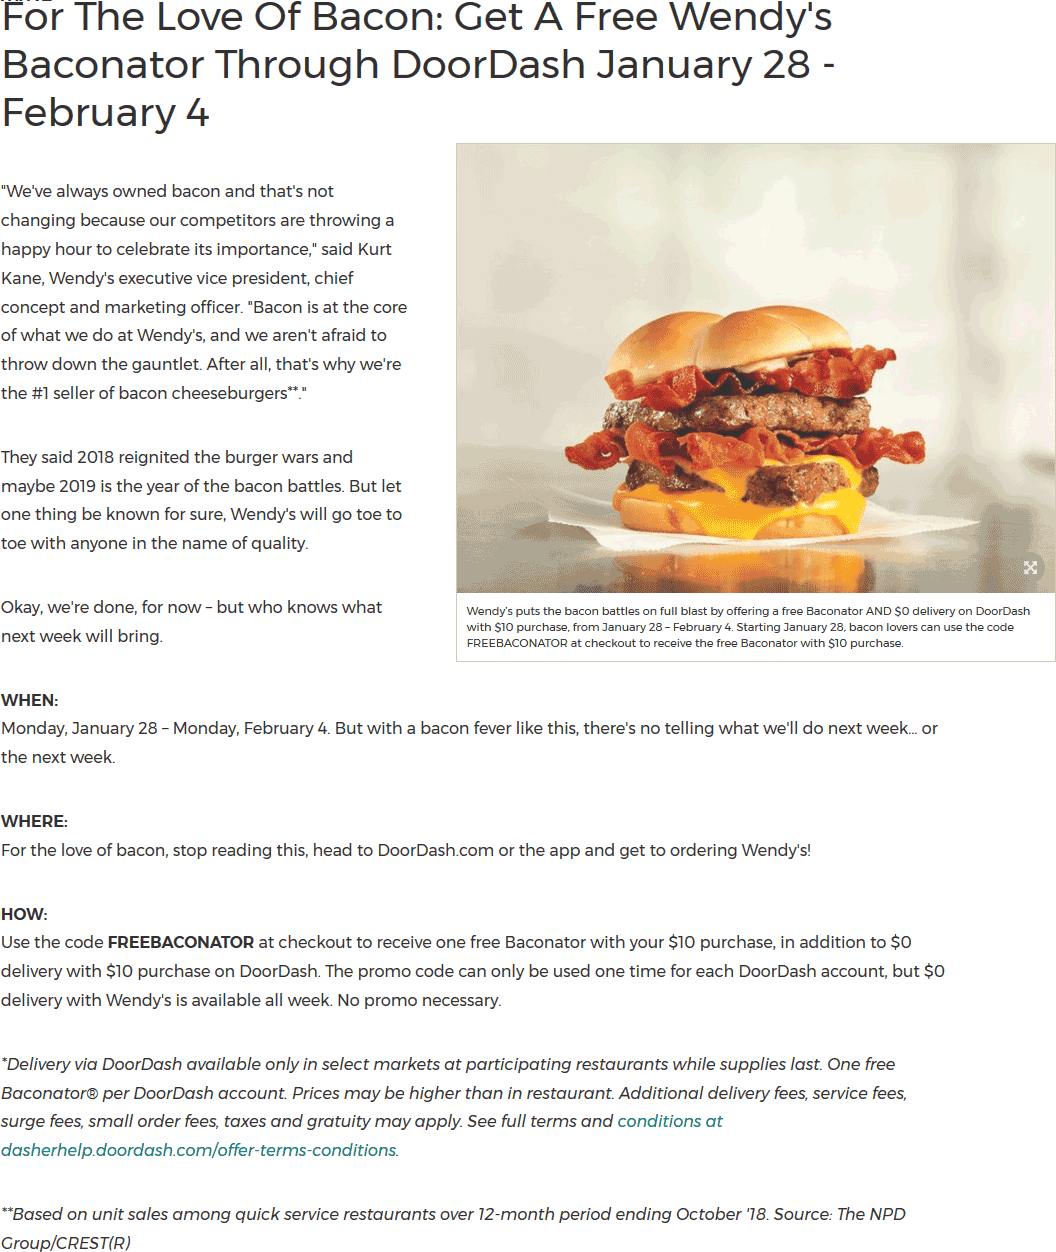 Wendys Coupon March 2019 Free bacon cheeseburger with $10 spent on delivery at Wendys via promo code FREEBACONATOR